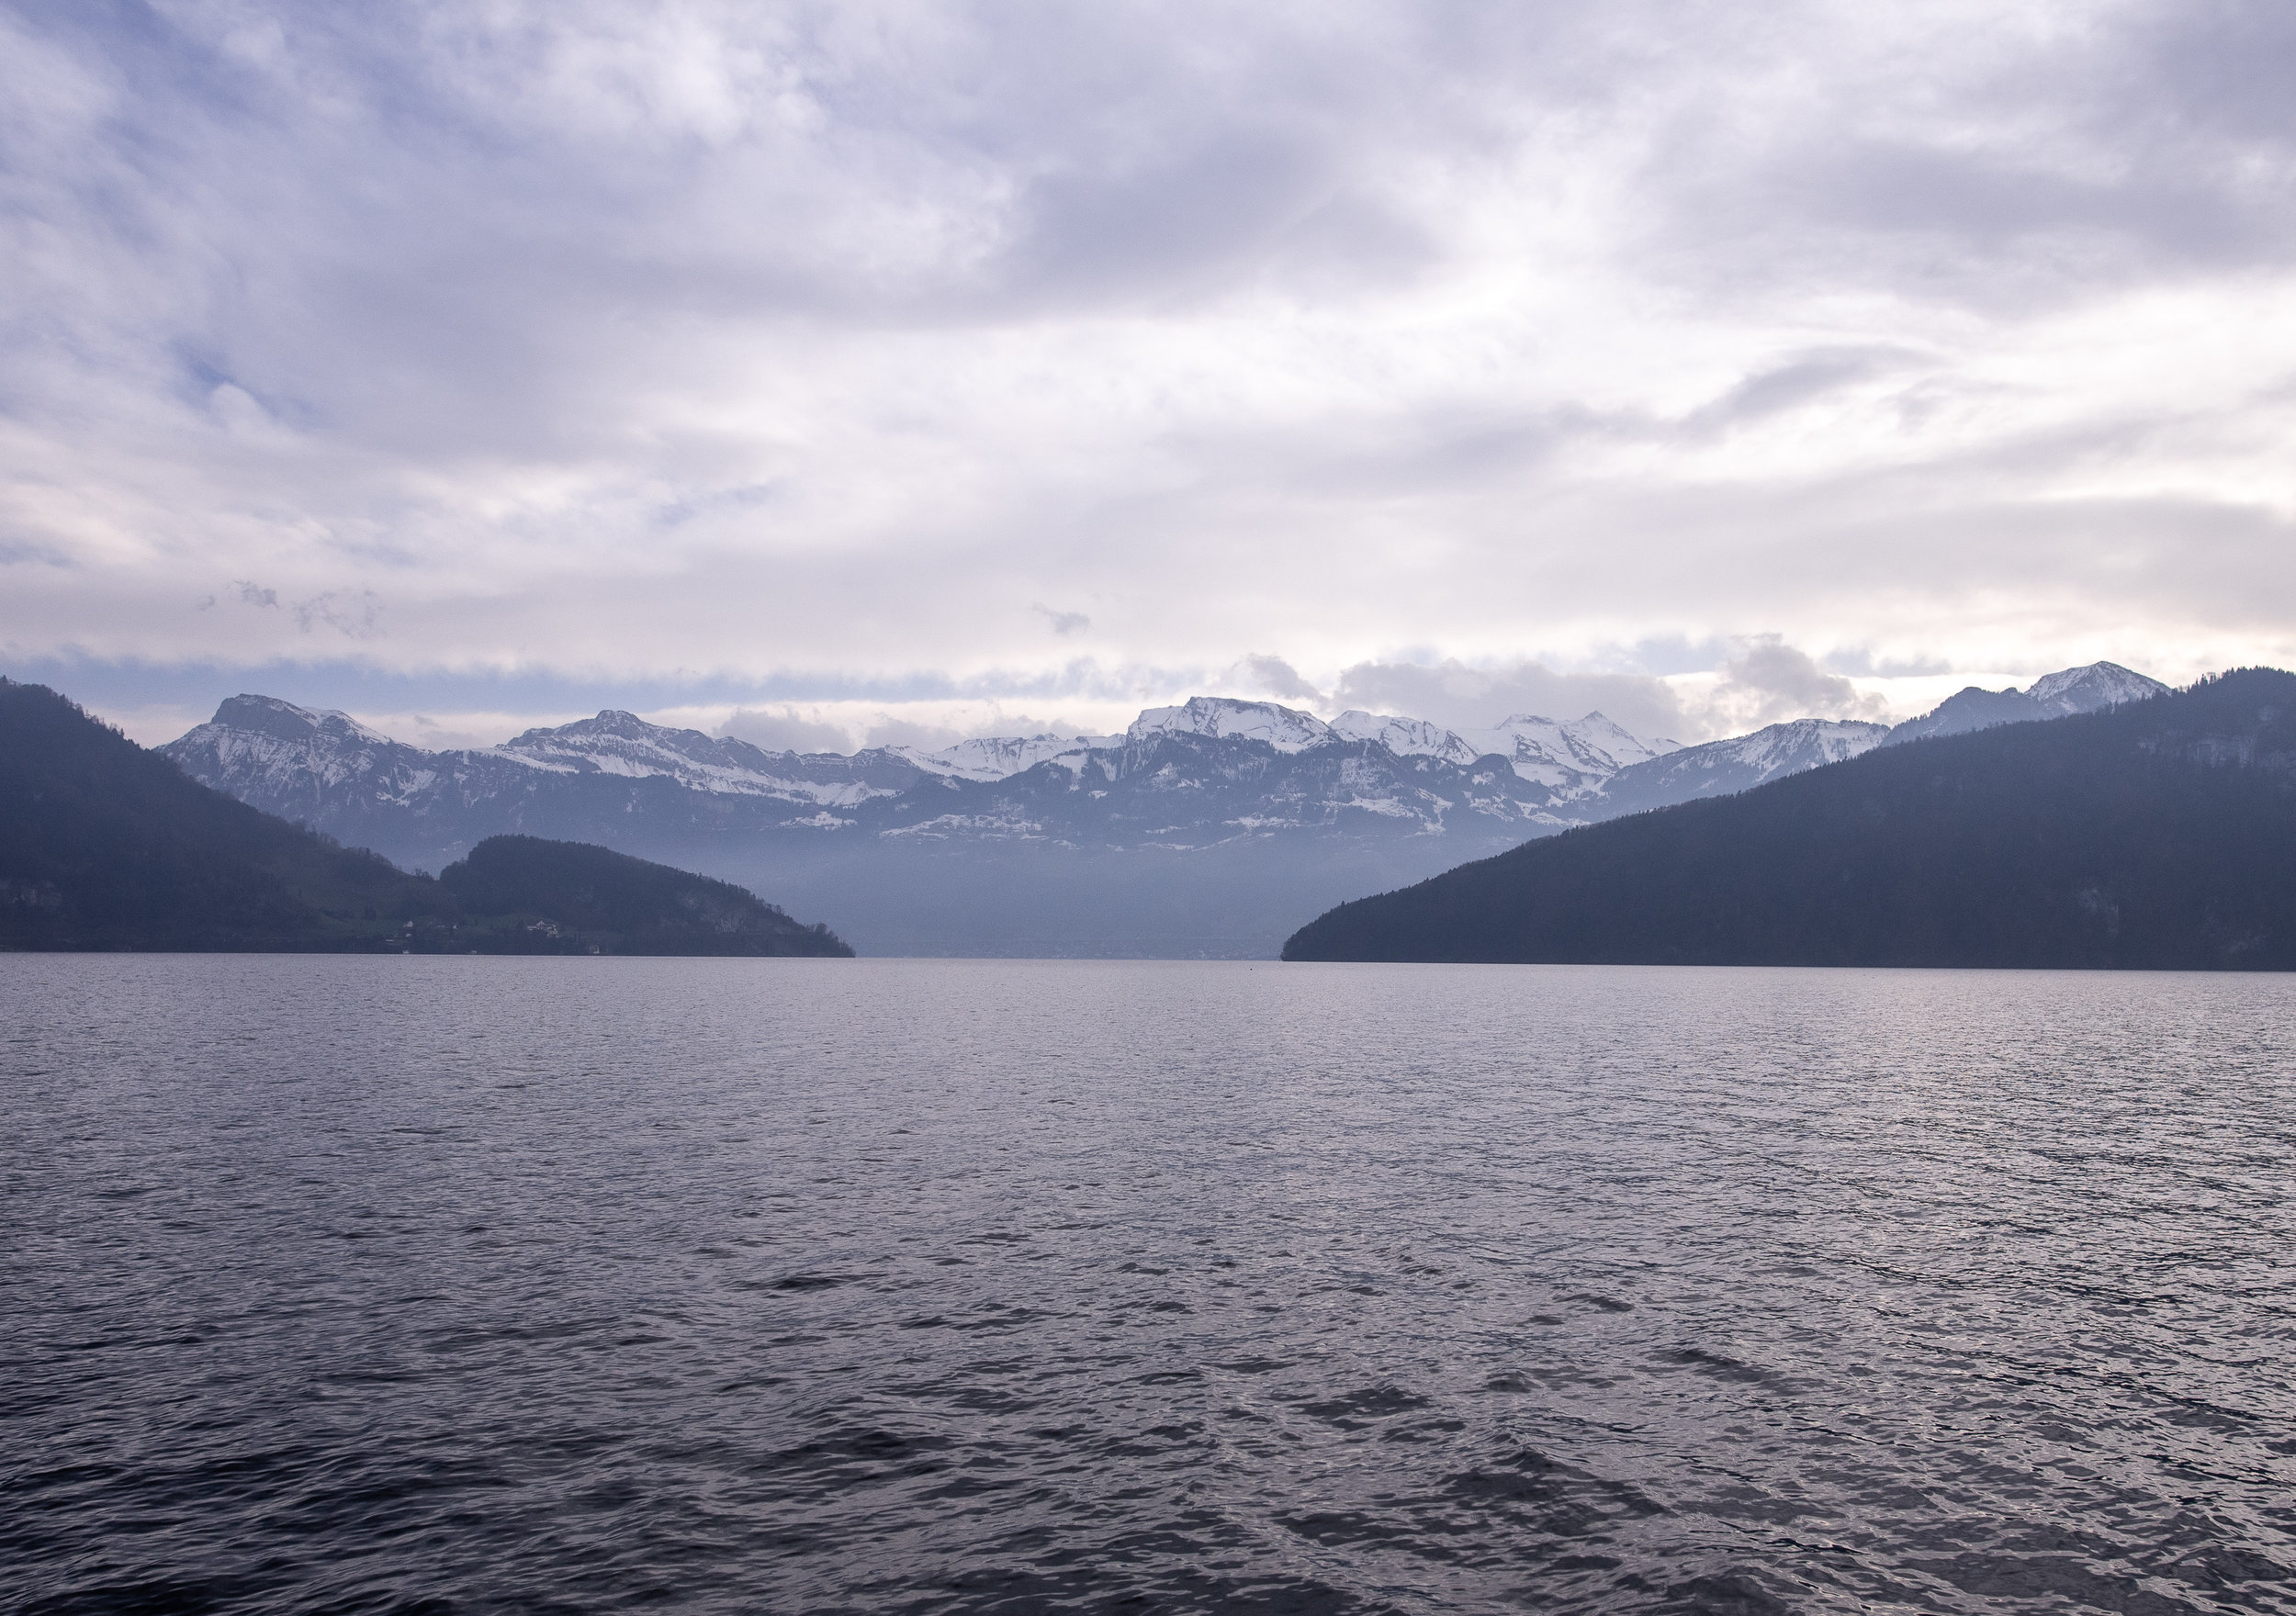 Snow-capped mountains surrounding the lake.